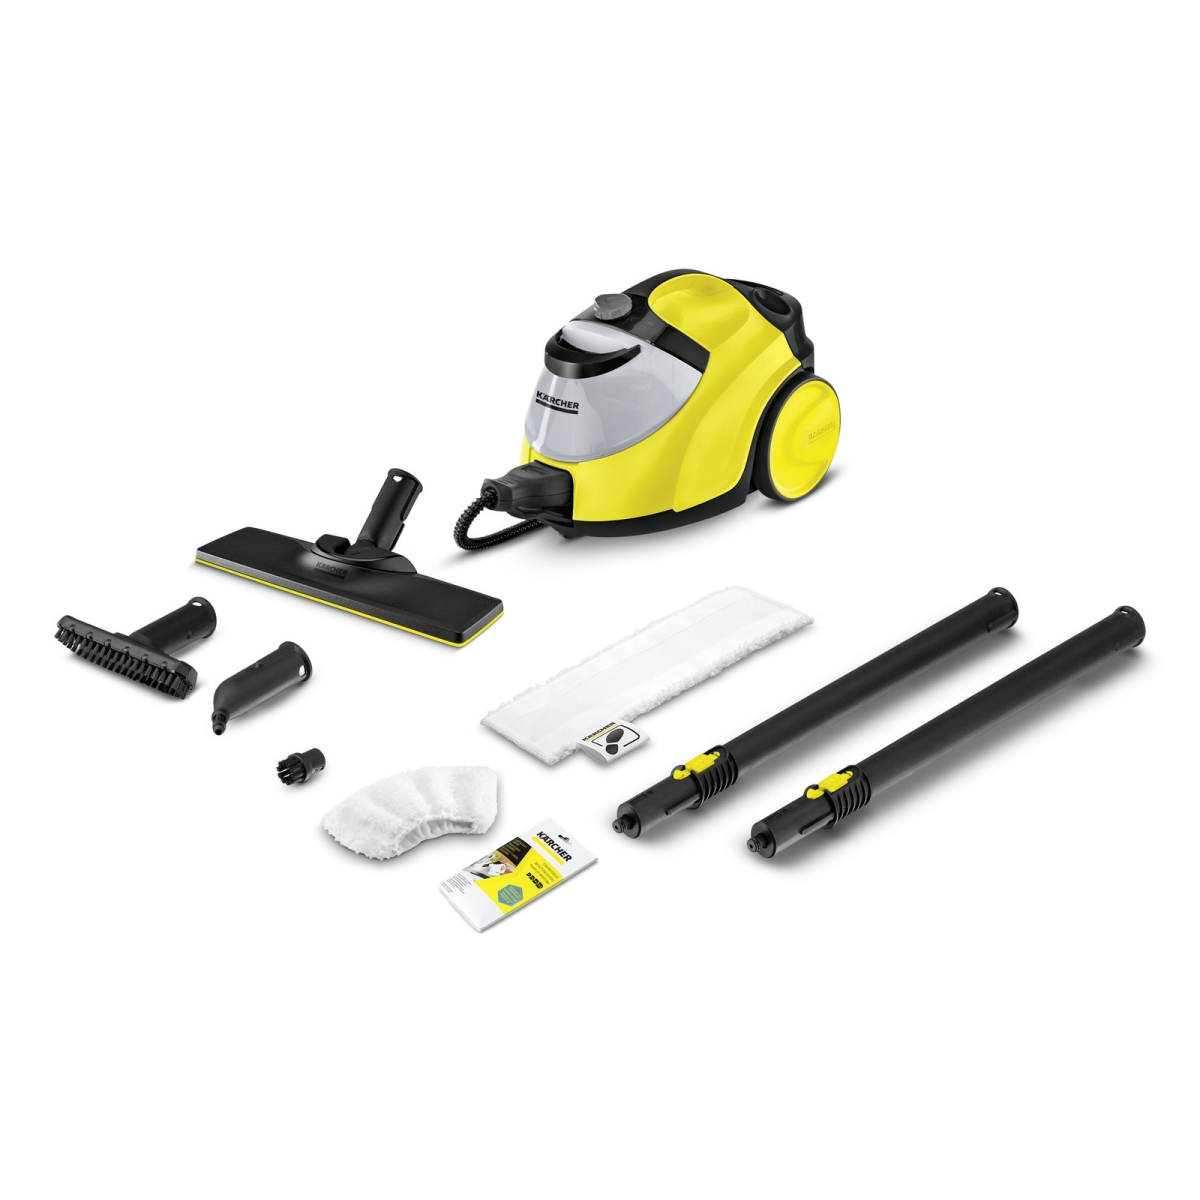 Steam cleaner Karcher SC 5 EasyFix Iron Plug 1pc welding soldering solder iron tip cleaner cleaning steel wire with stand set soldering iron stand adjustable brand new